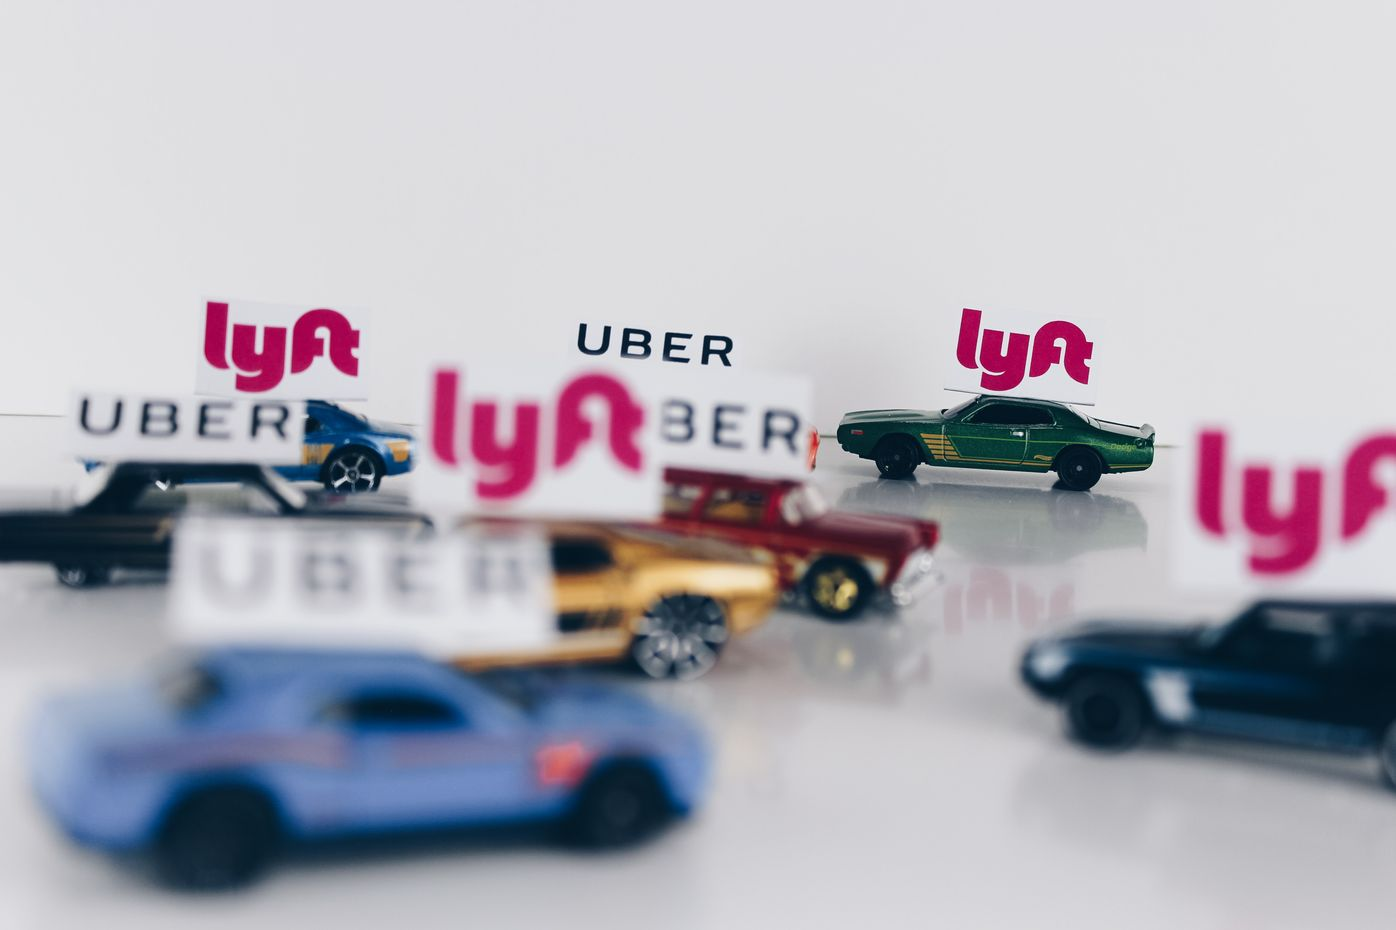 Cover photo with Uber and Lyft cars